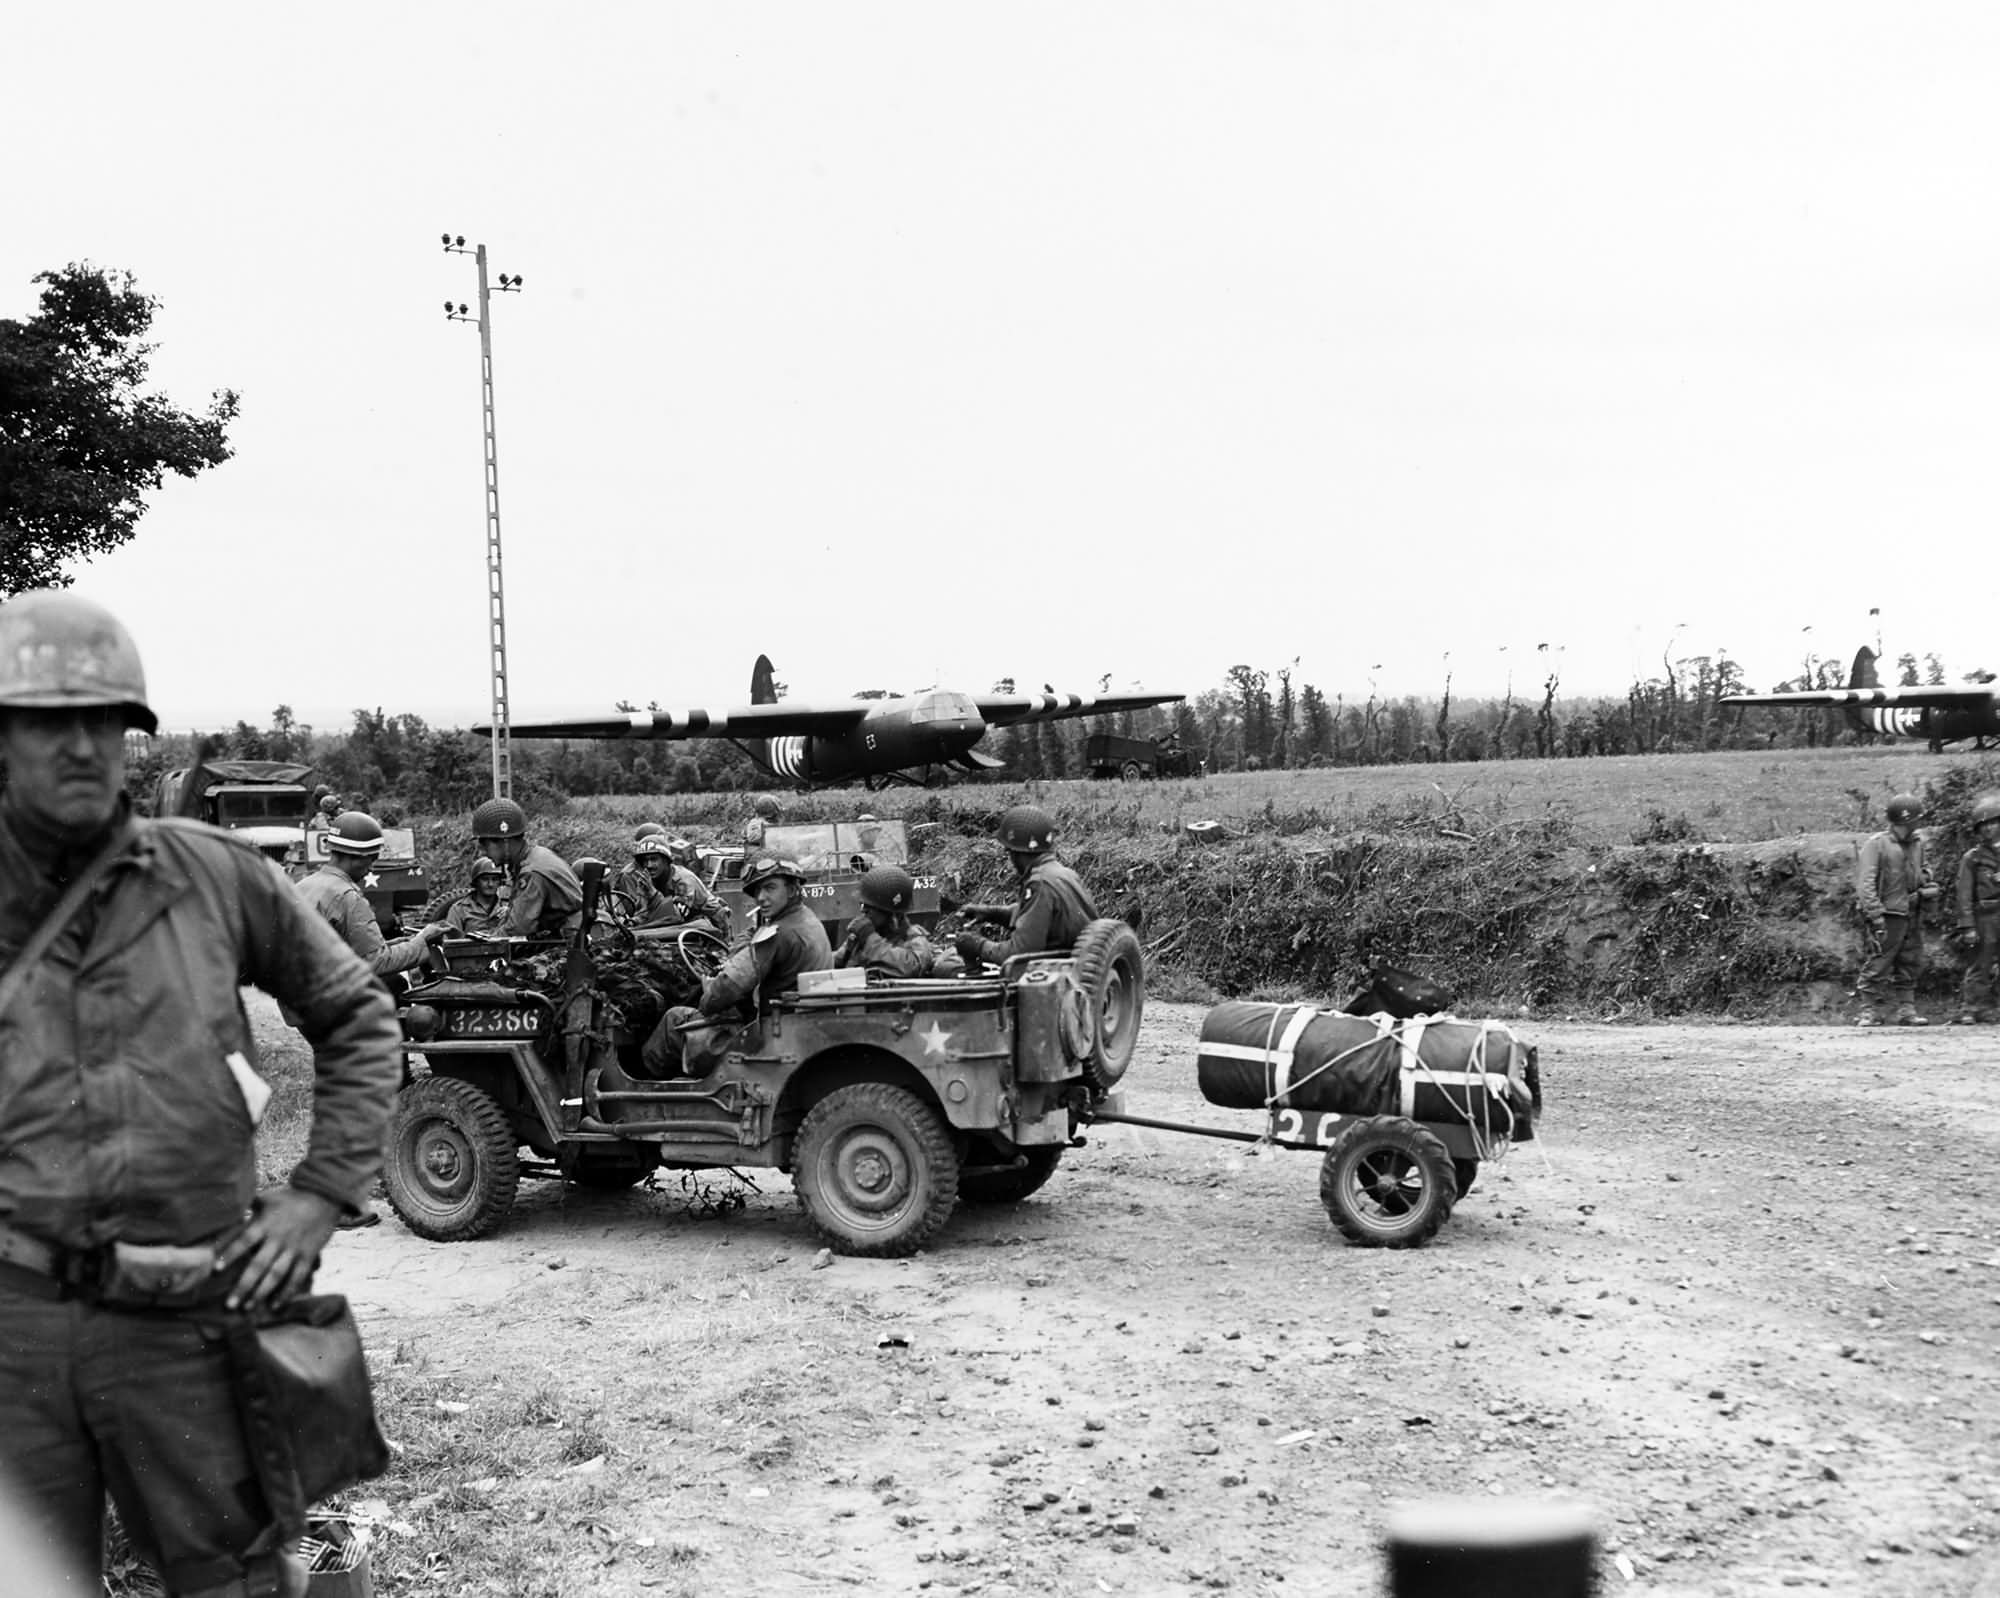 Infantrymen in Jeep get directions from a MP at a Normandy crossroads